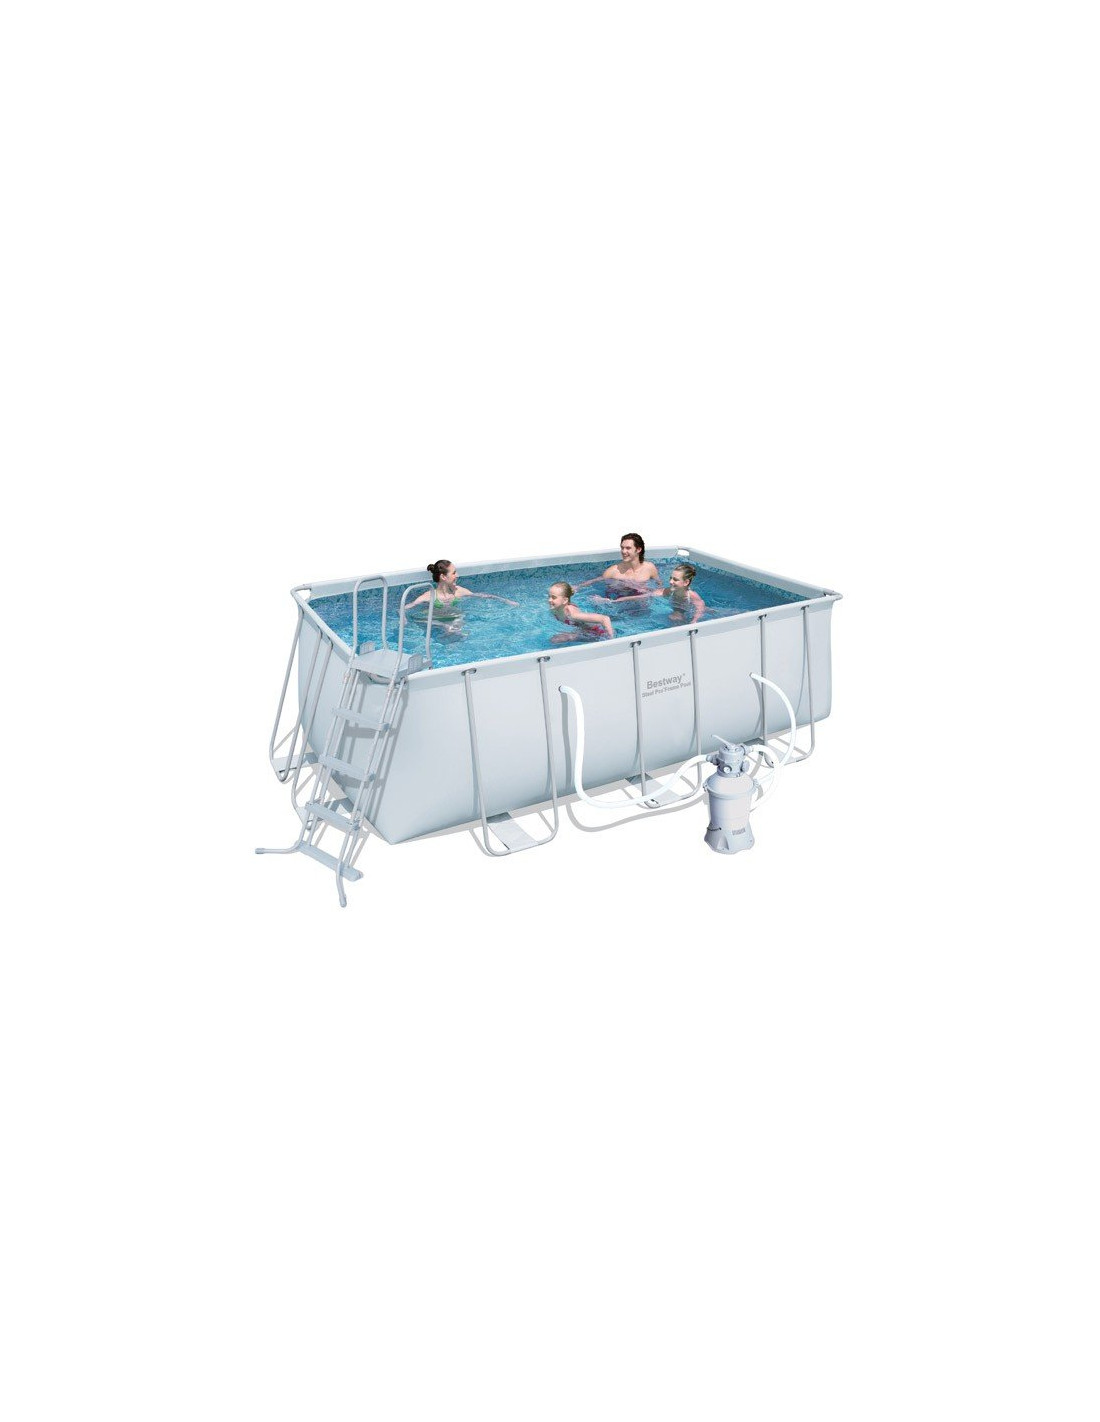 vente de piscine hors sol beau pompe pour filtre a sable piscine hors sol pompe piscine intex. Black Bedroom Furniture Sets. Home Design Ideas